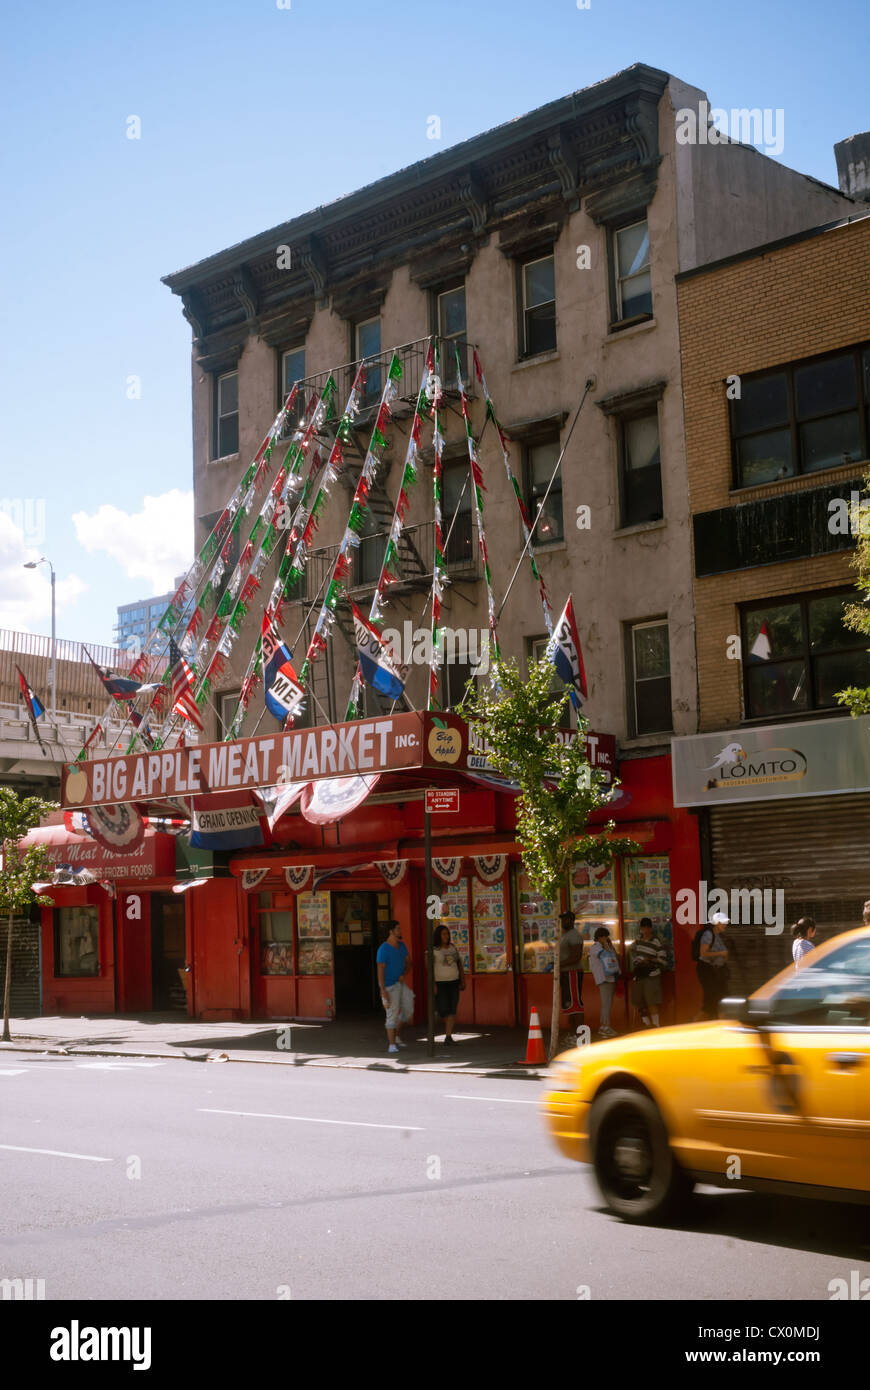 the big apple meat market in the hells kitchen neighborhood of new york - Hells Kitchen Neighborhood